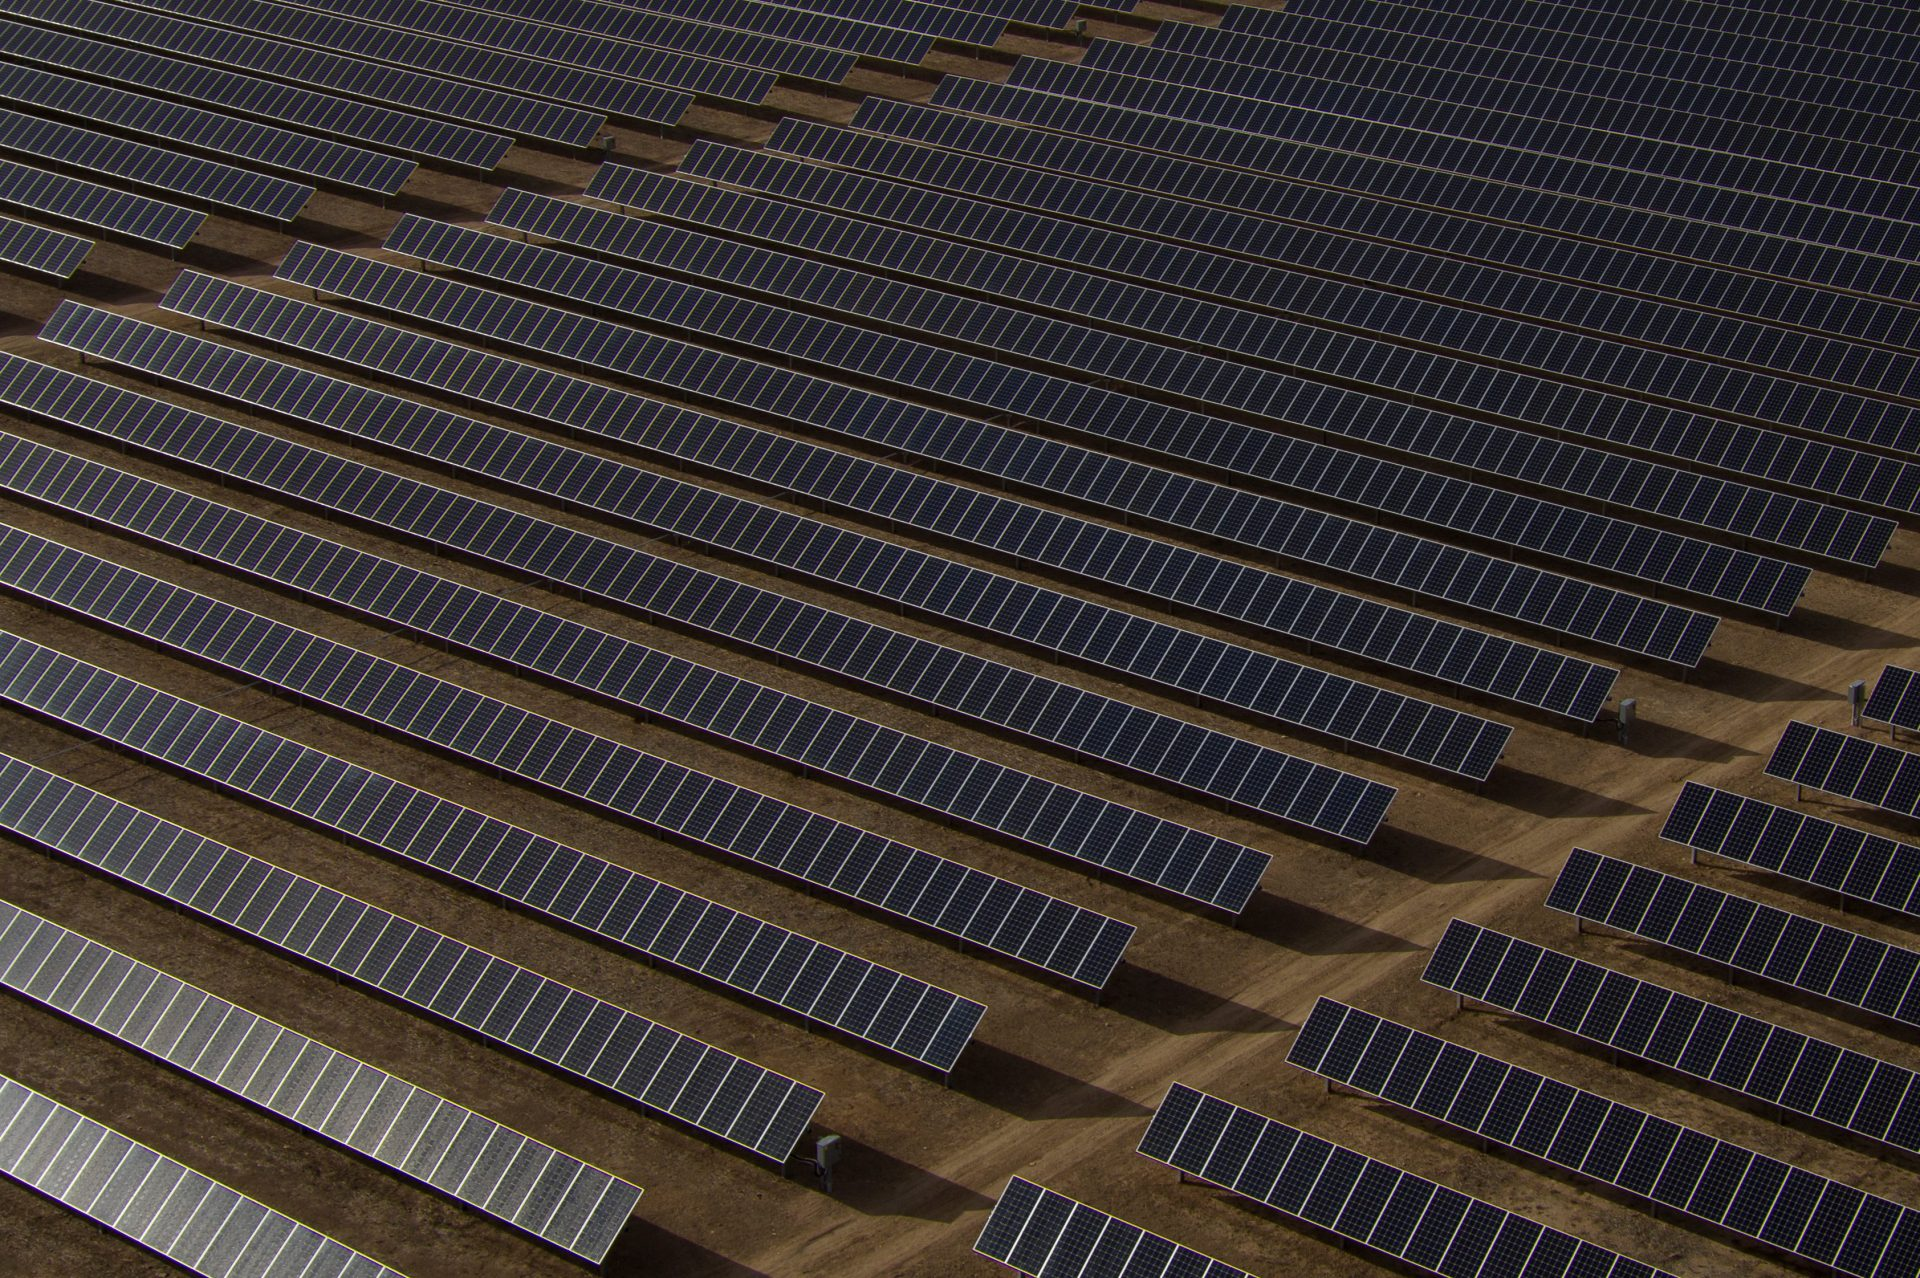 Solar panel demand causing worldwide silver price rises